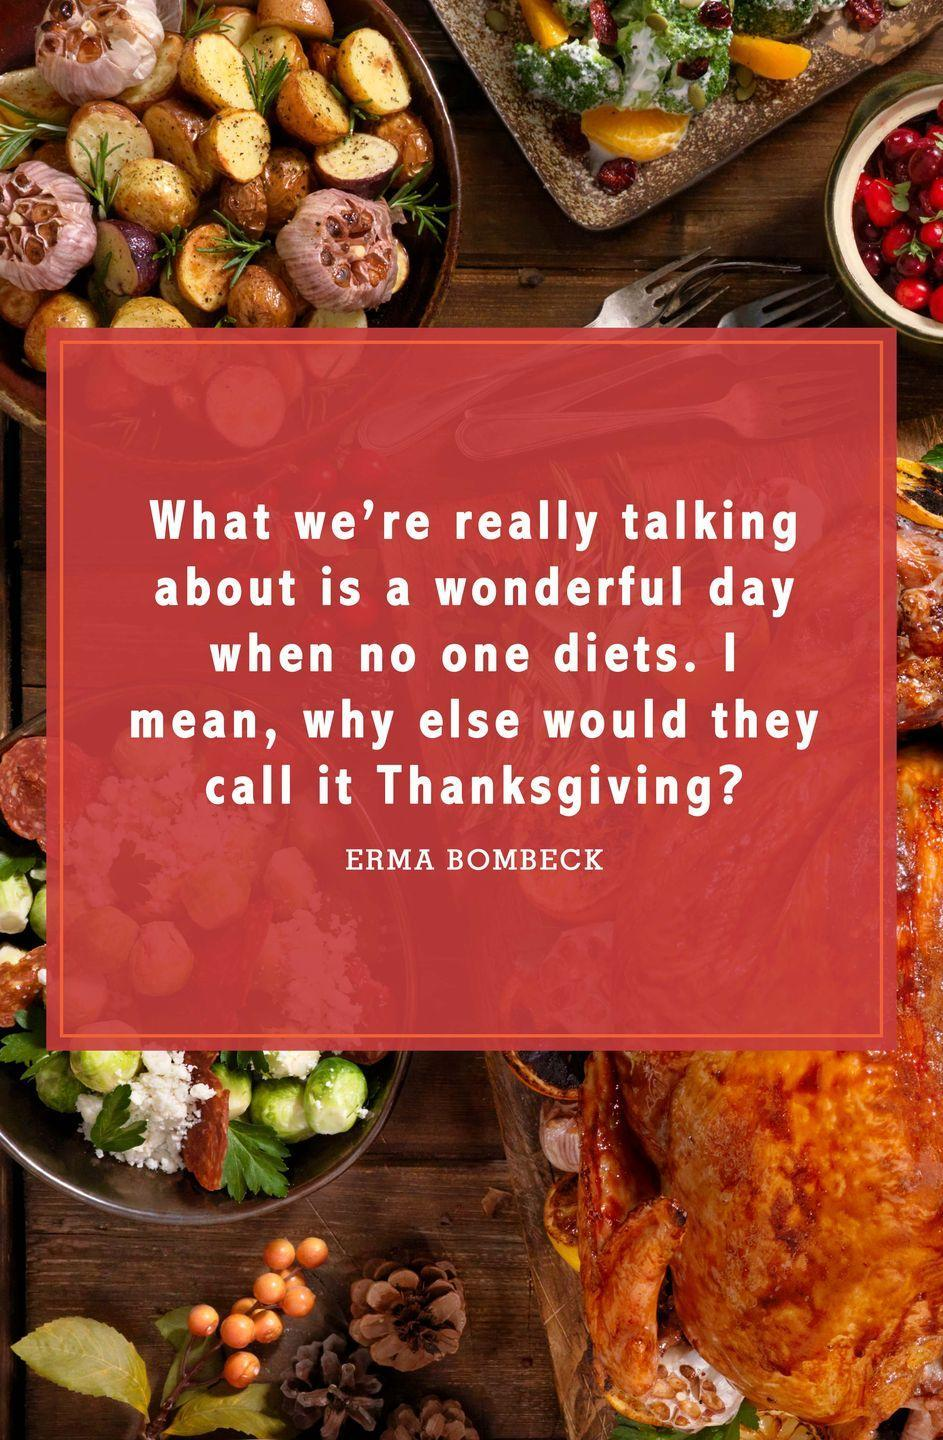 """<p>""""What we're really talking about is a wonderful day when no one diets. I mean, why else would they call it Thanksgiving?""""</p>"""